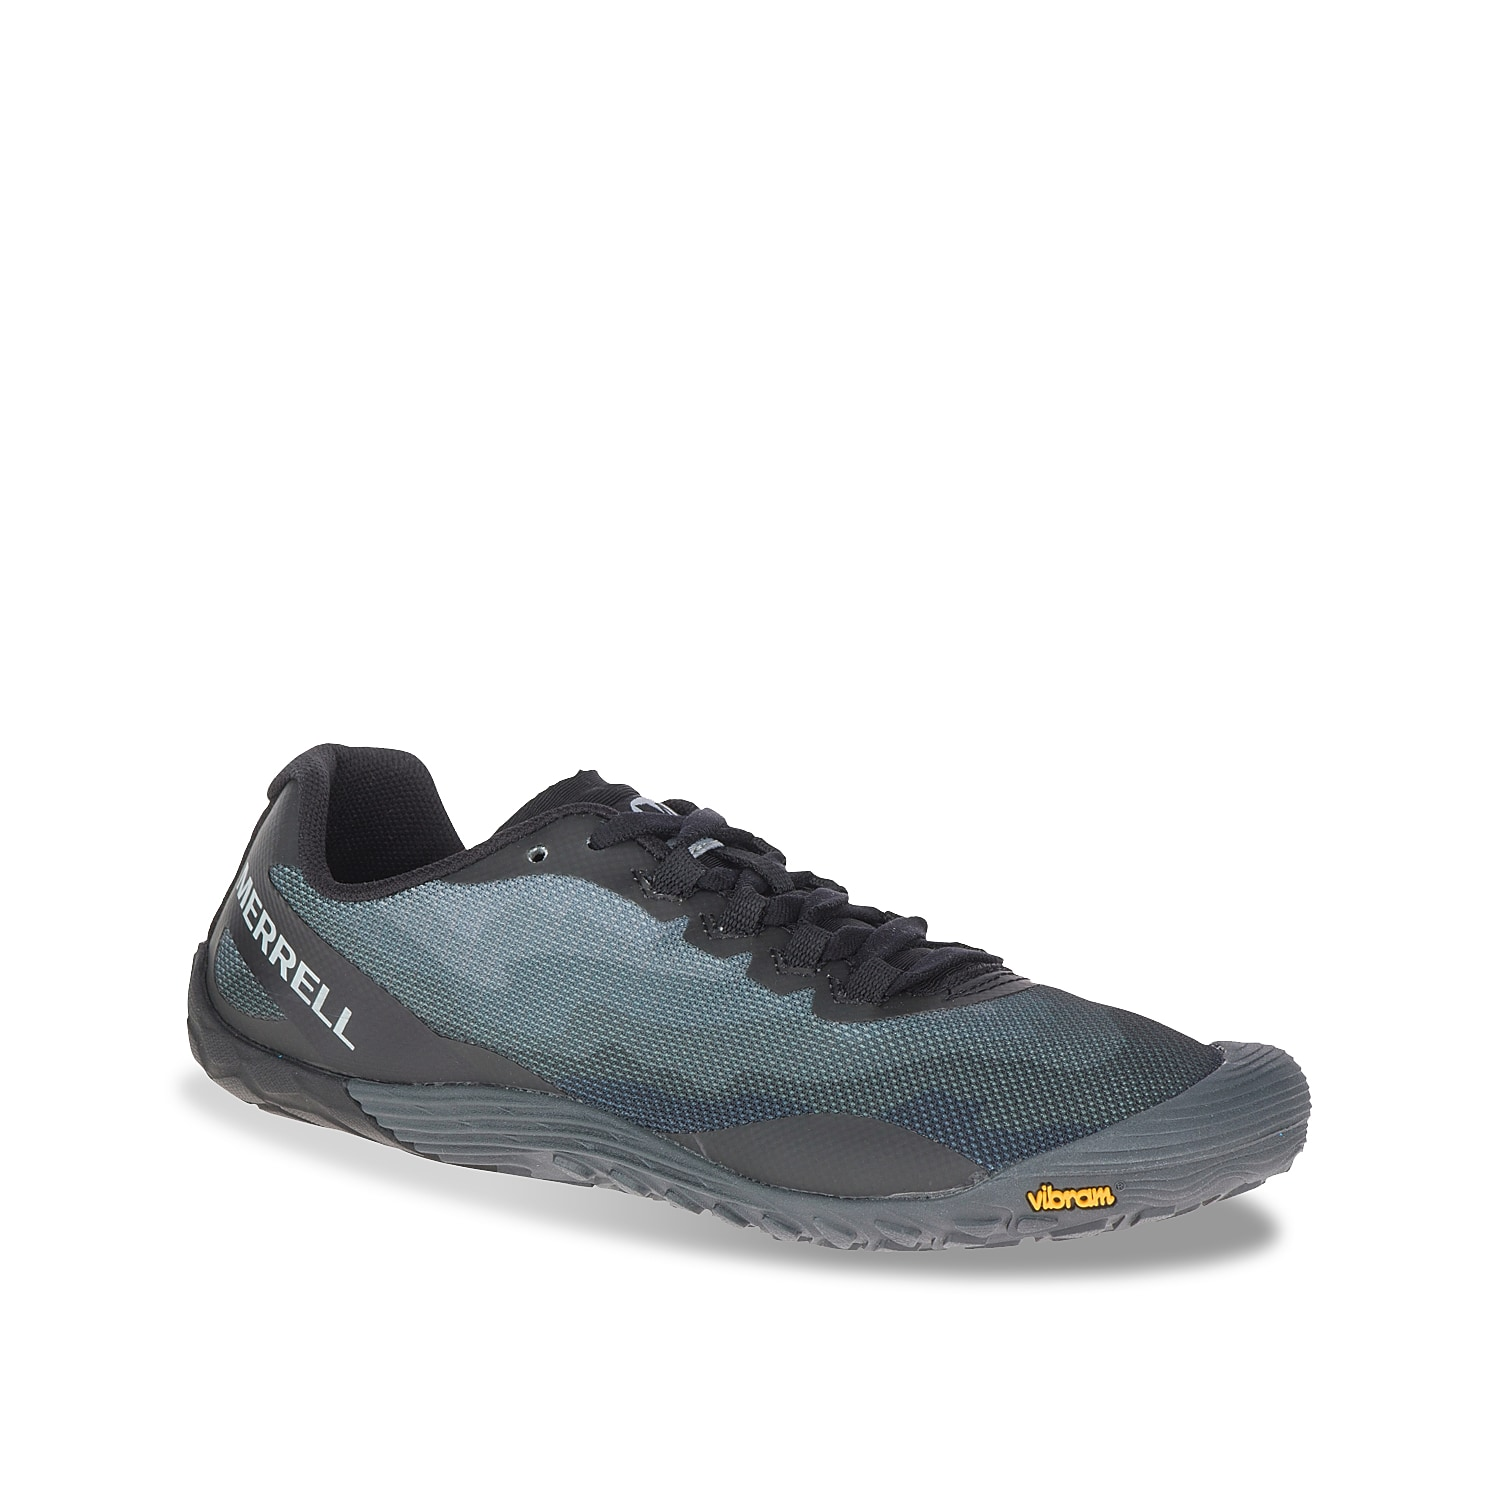 Experience maximum freedom with the Trail Glove 4 trail shoe from Merrell. This trainer features a Barefoot 2 design for increased underfoot connection while theVibram® Tc5+ sole adds stability to every step.